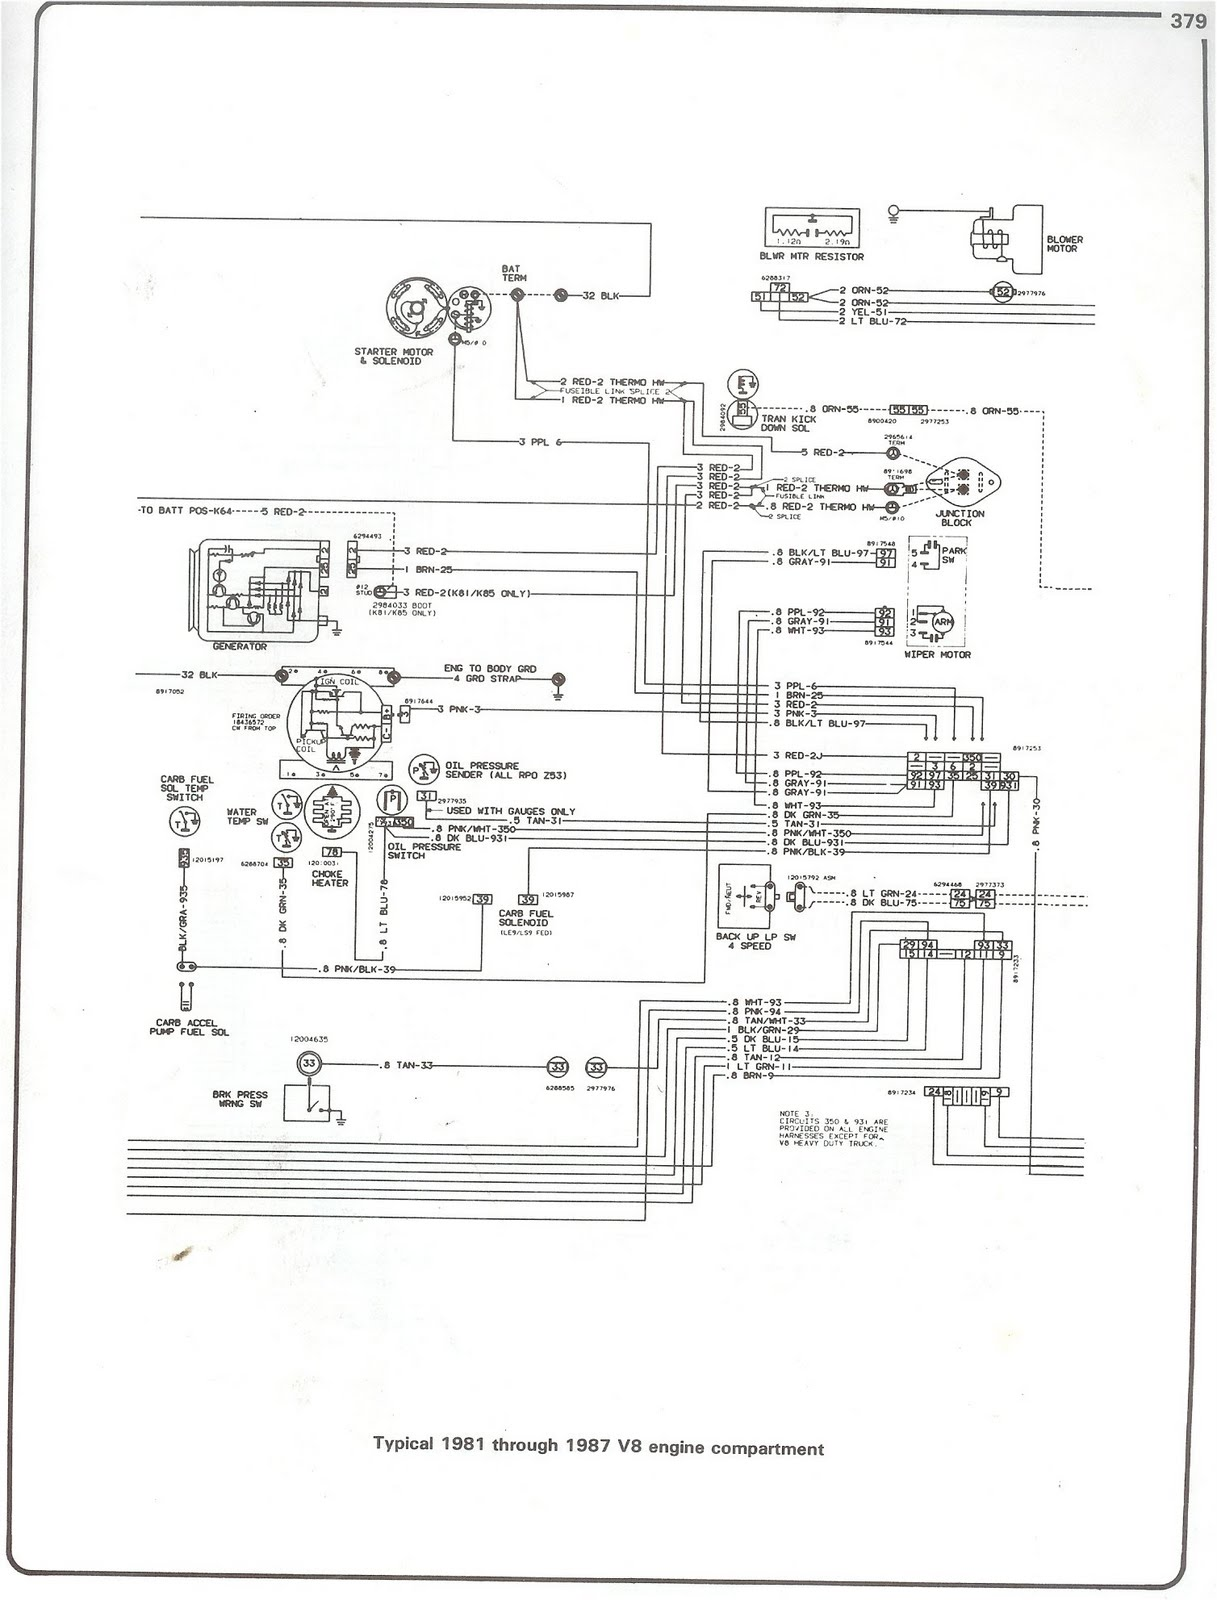 Chevy Fuse Box Diagram 1986 C 10 Learn Wiring Effectively Club Car 1981 Gm For You All U2022 Rh Onlinetuner Co